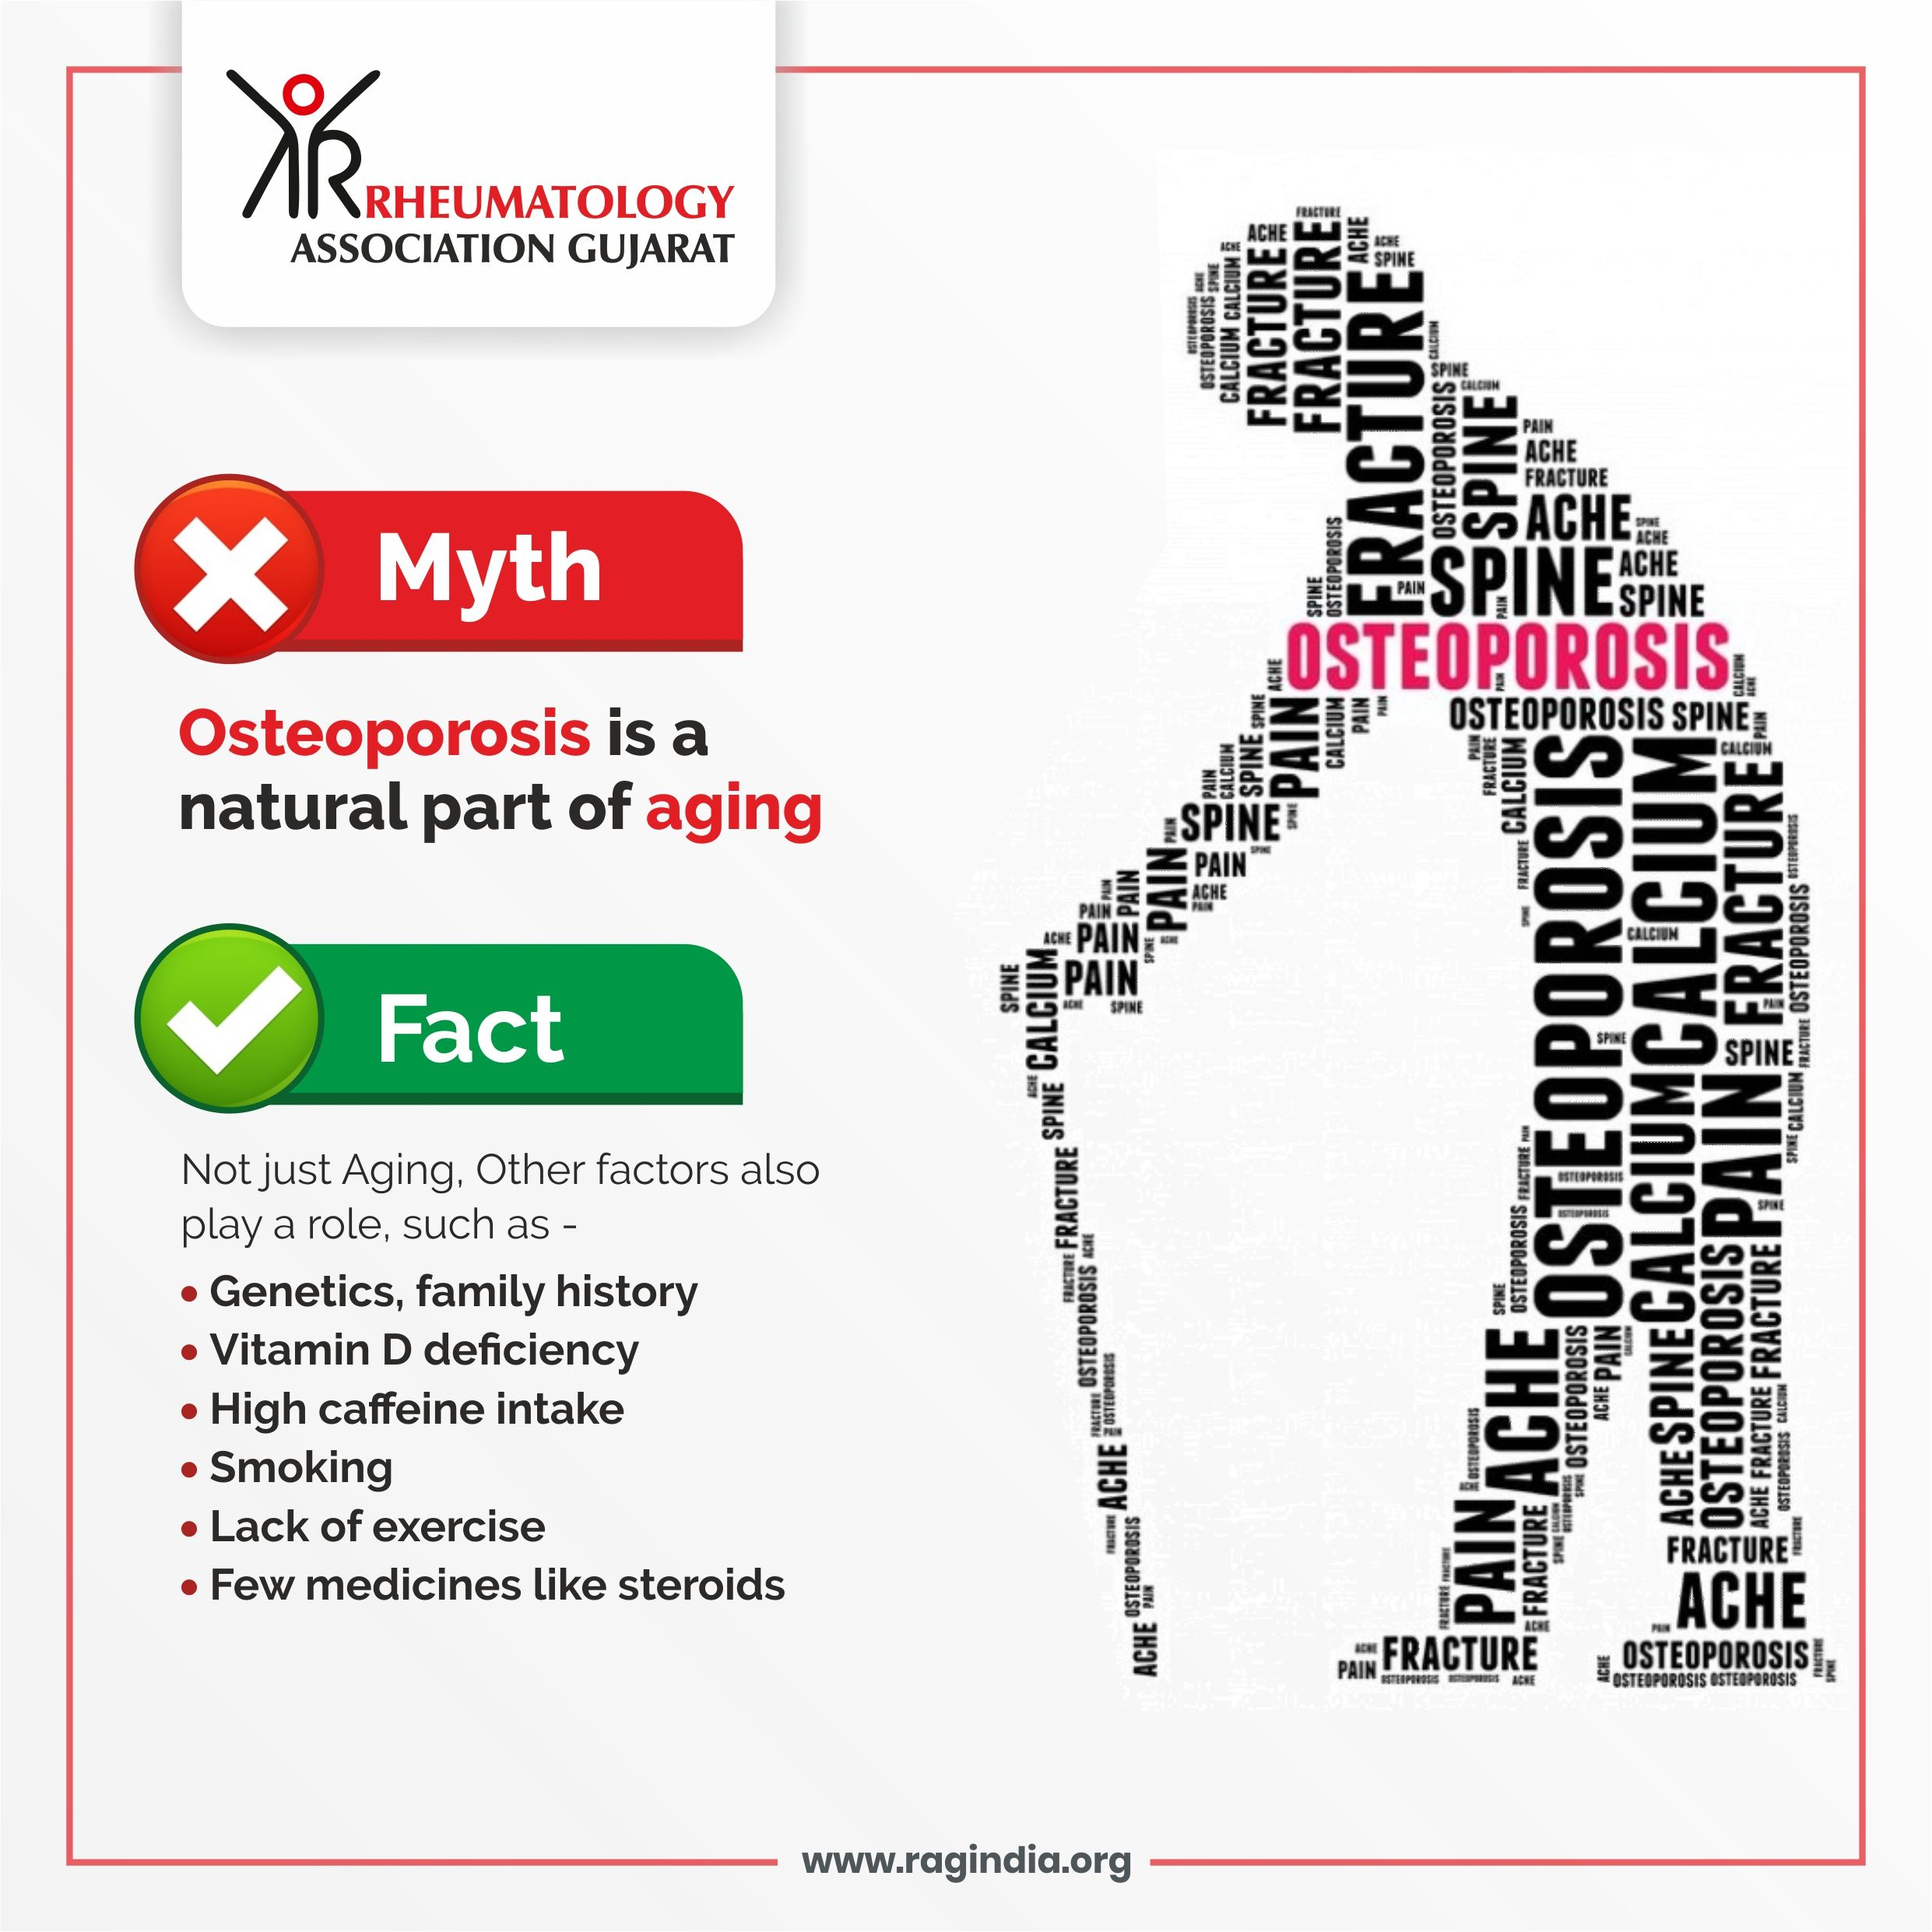 34+ What does a rheumatologist do for osteoporosis info